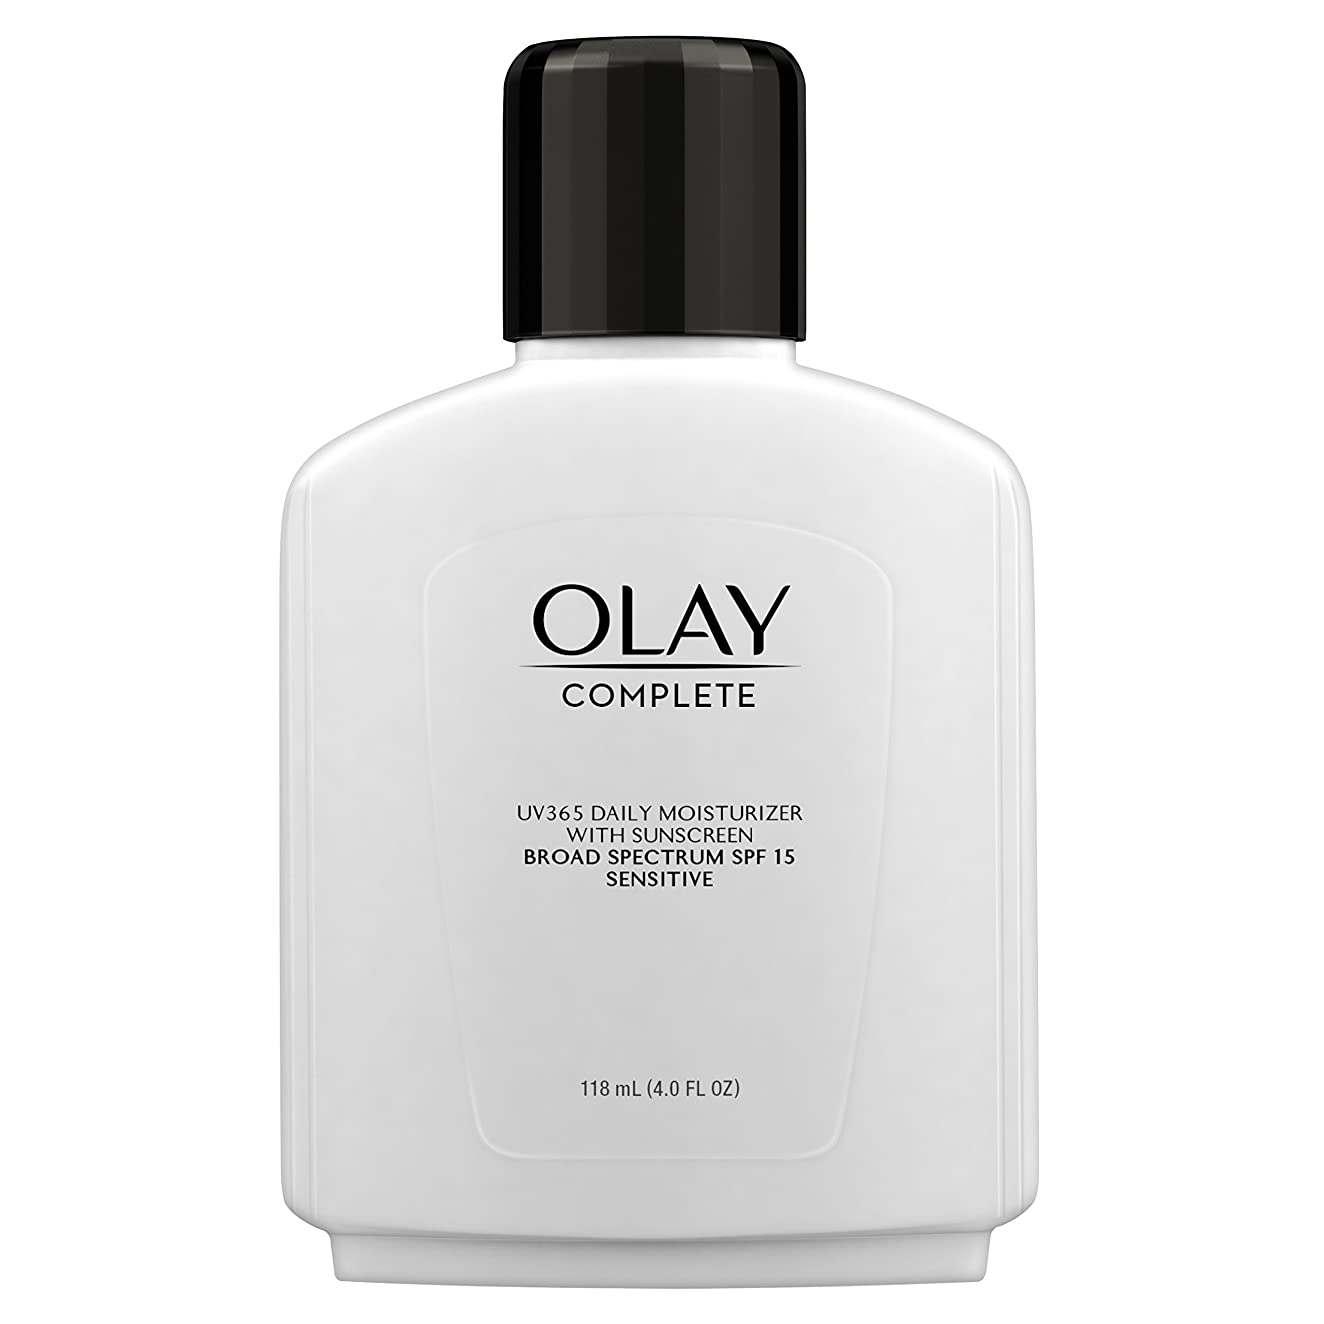 セマフォレモン鳴らすOlay Complete All Day Moisture Lotion UV Defense SPF 15, Sensitive Skin, 4 fl oz (118 ml) (1 pack) (並行輸入品)